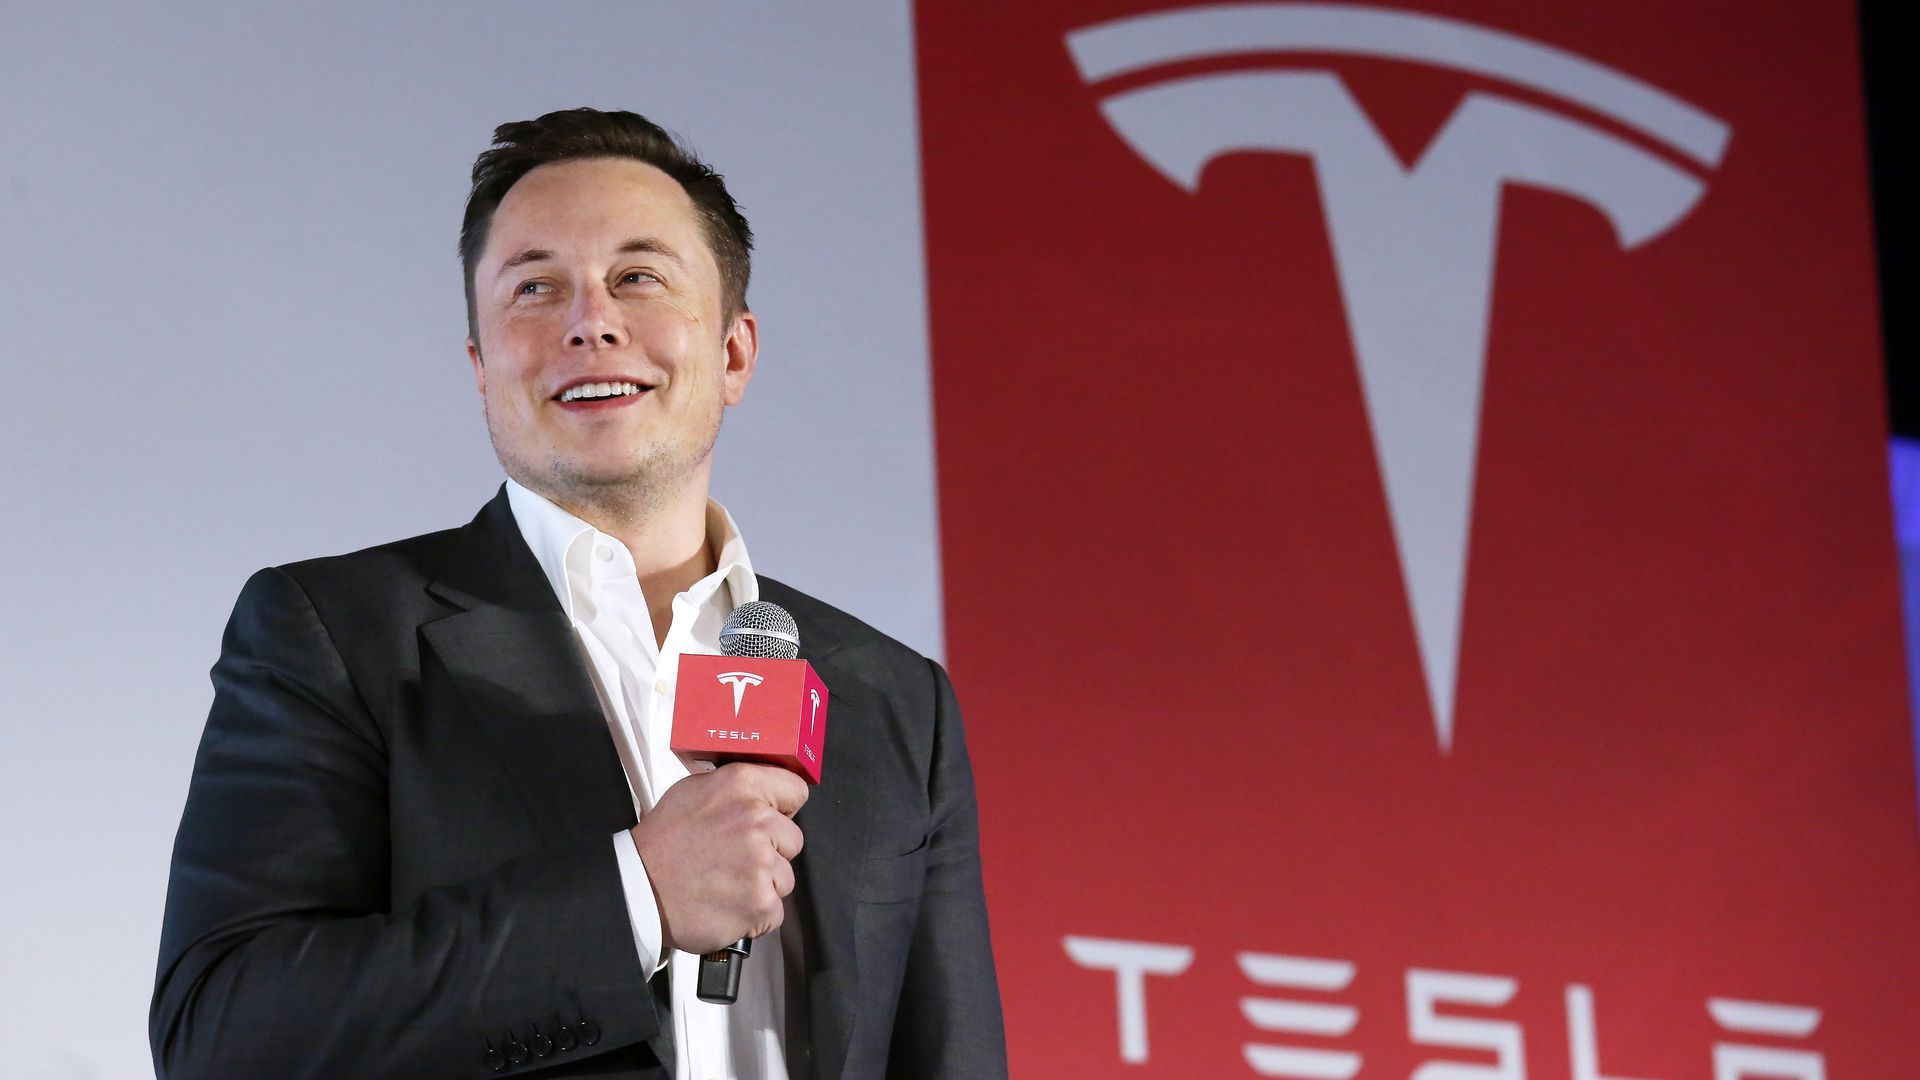 Elon Musk offers another self-driving prediction for Tesla ...